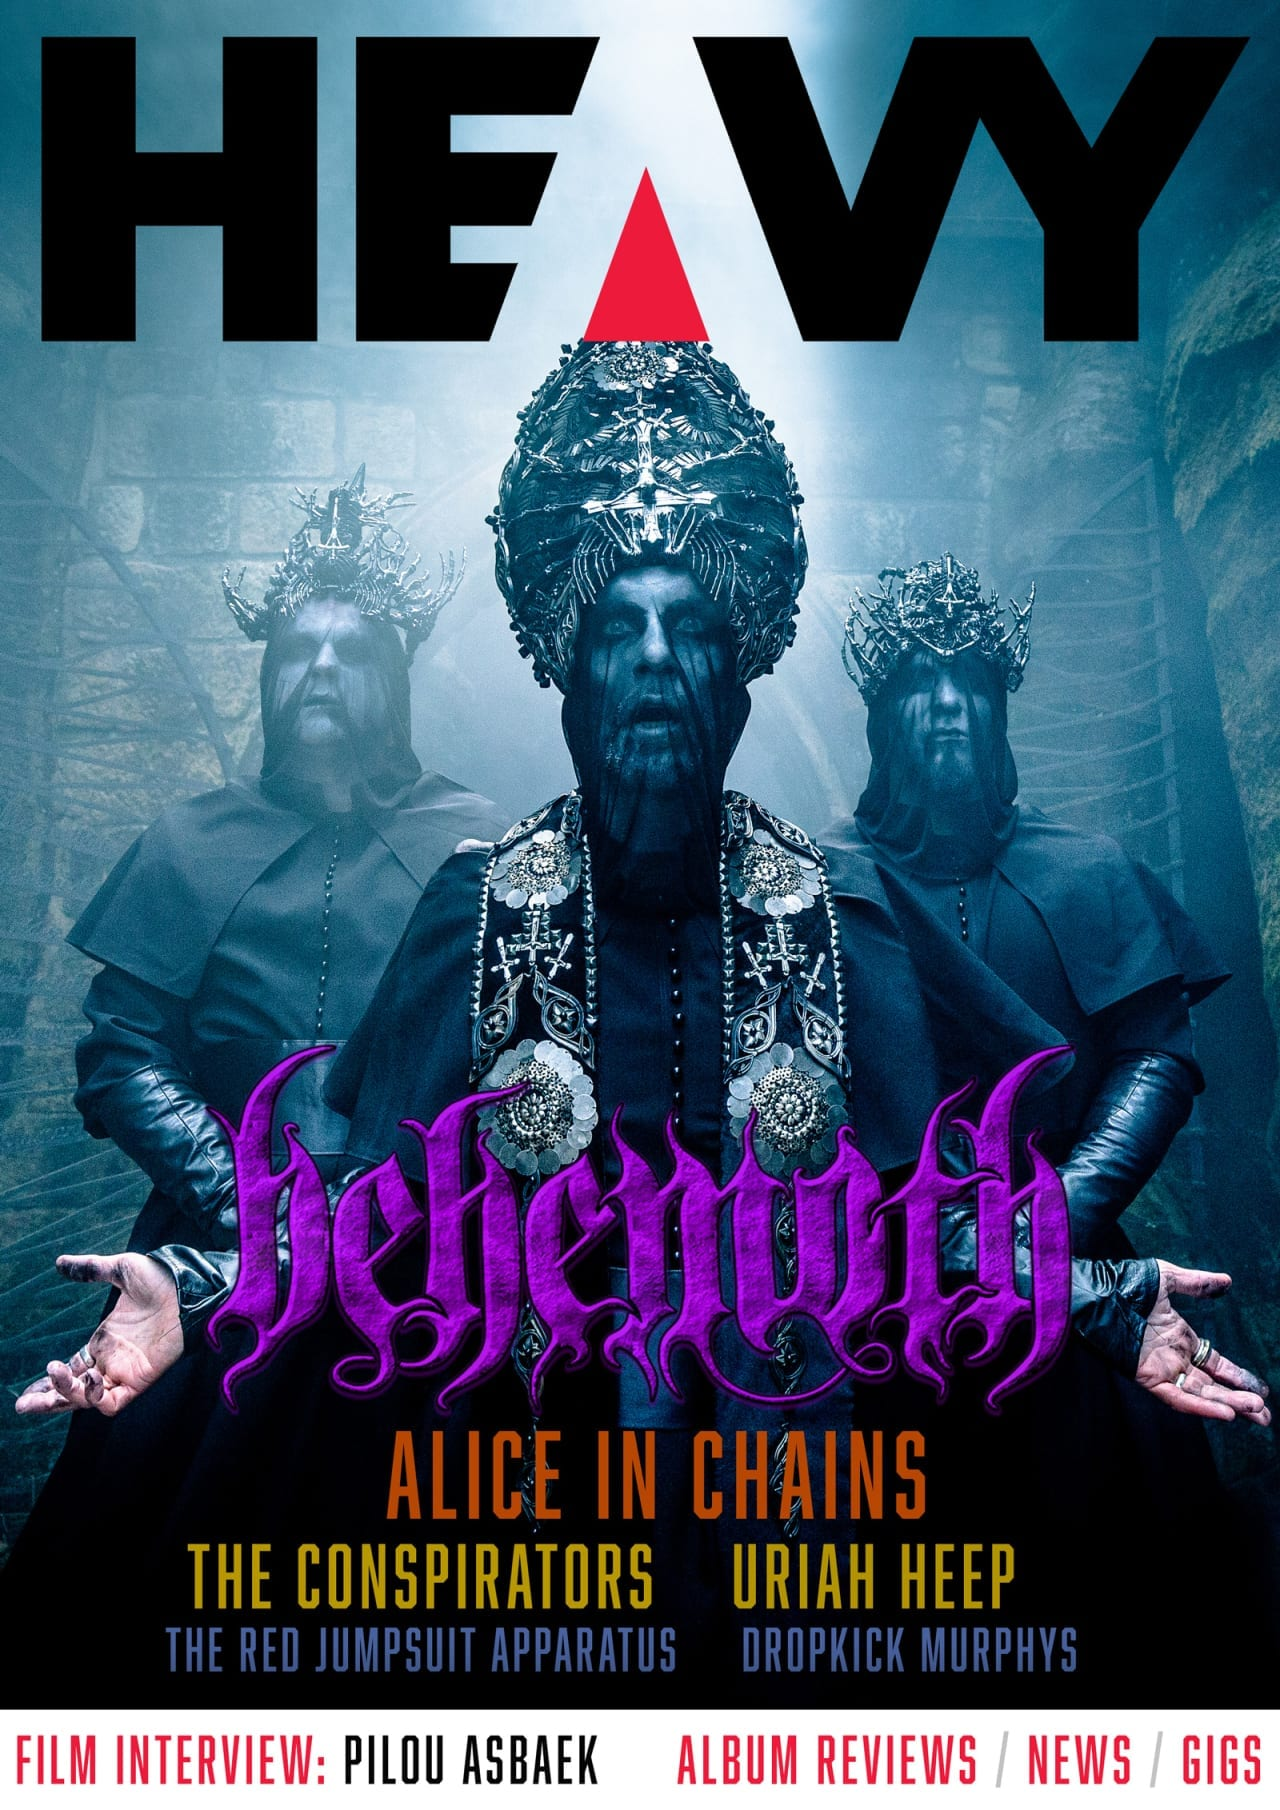 HEAVY Magazine Cover - Digi-Mag 54